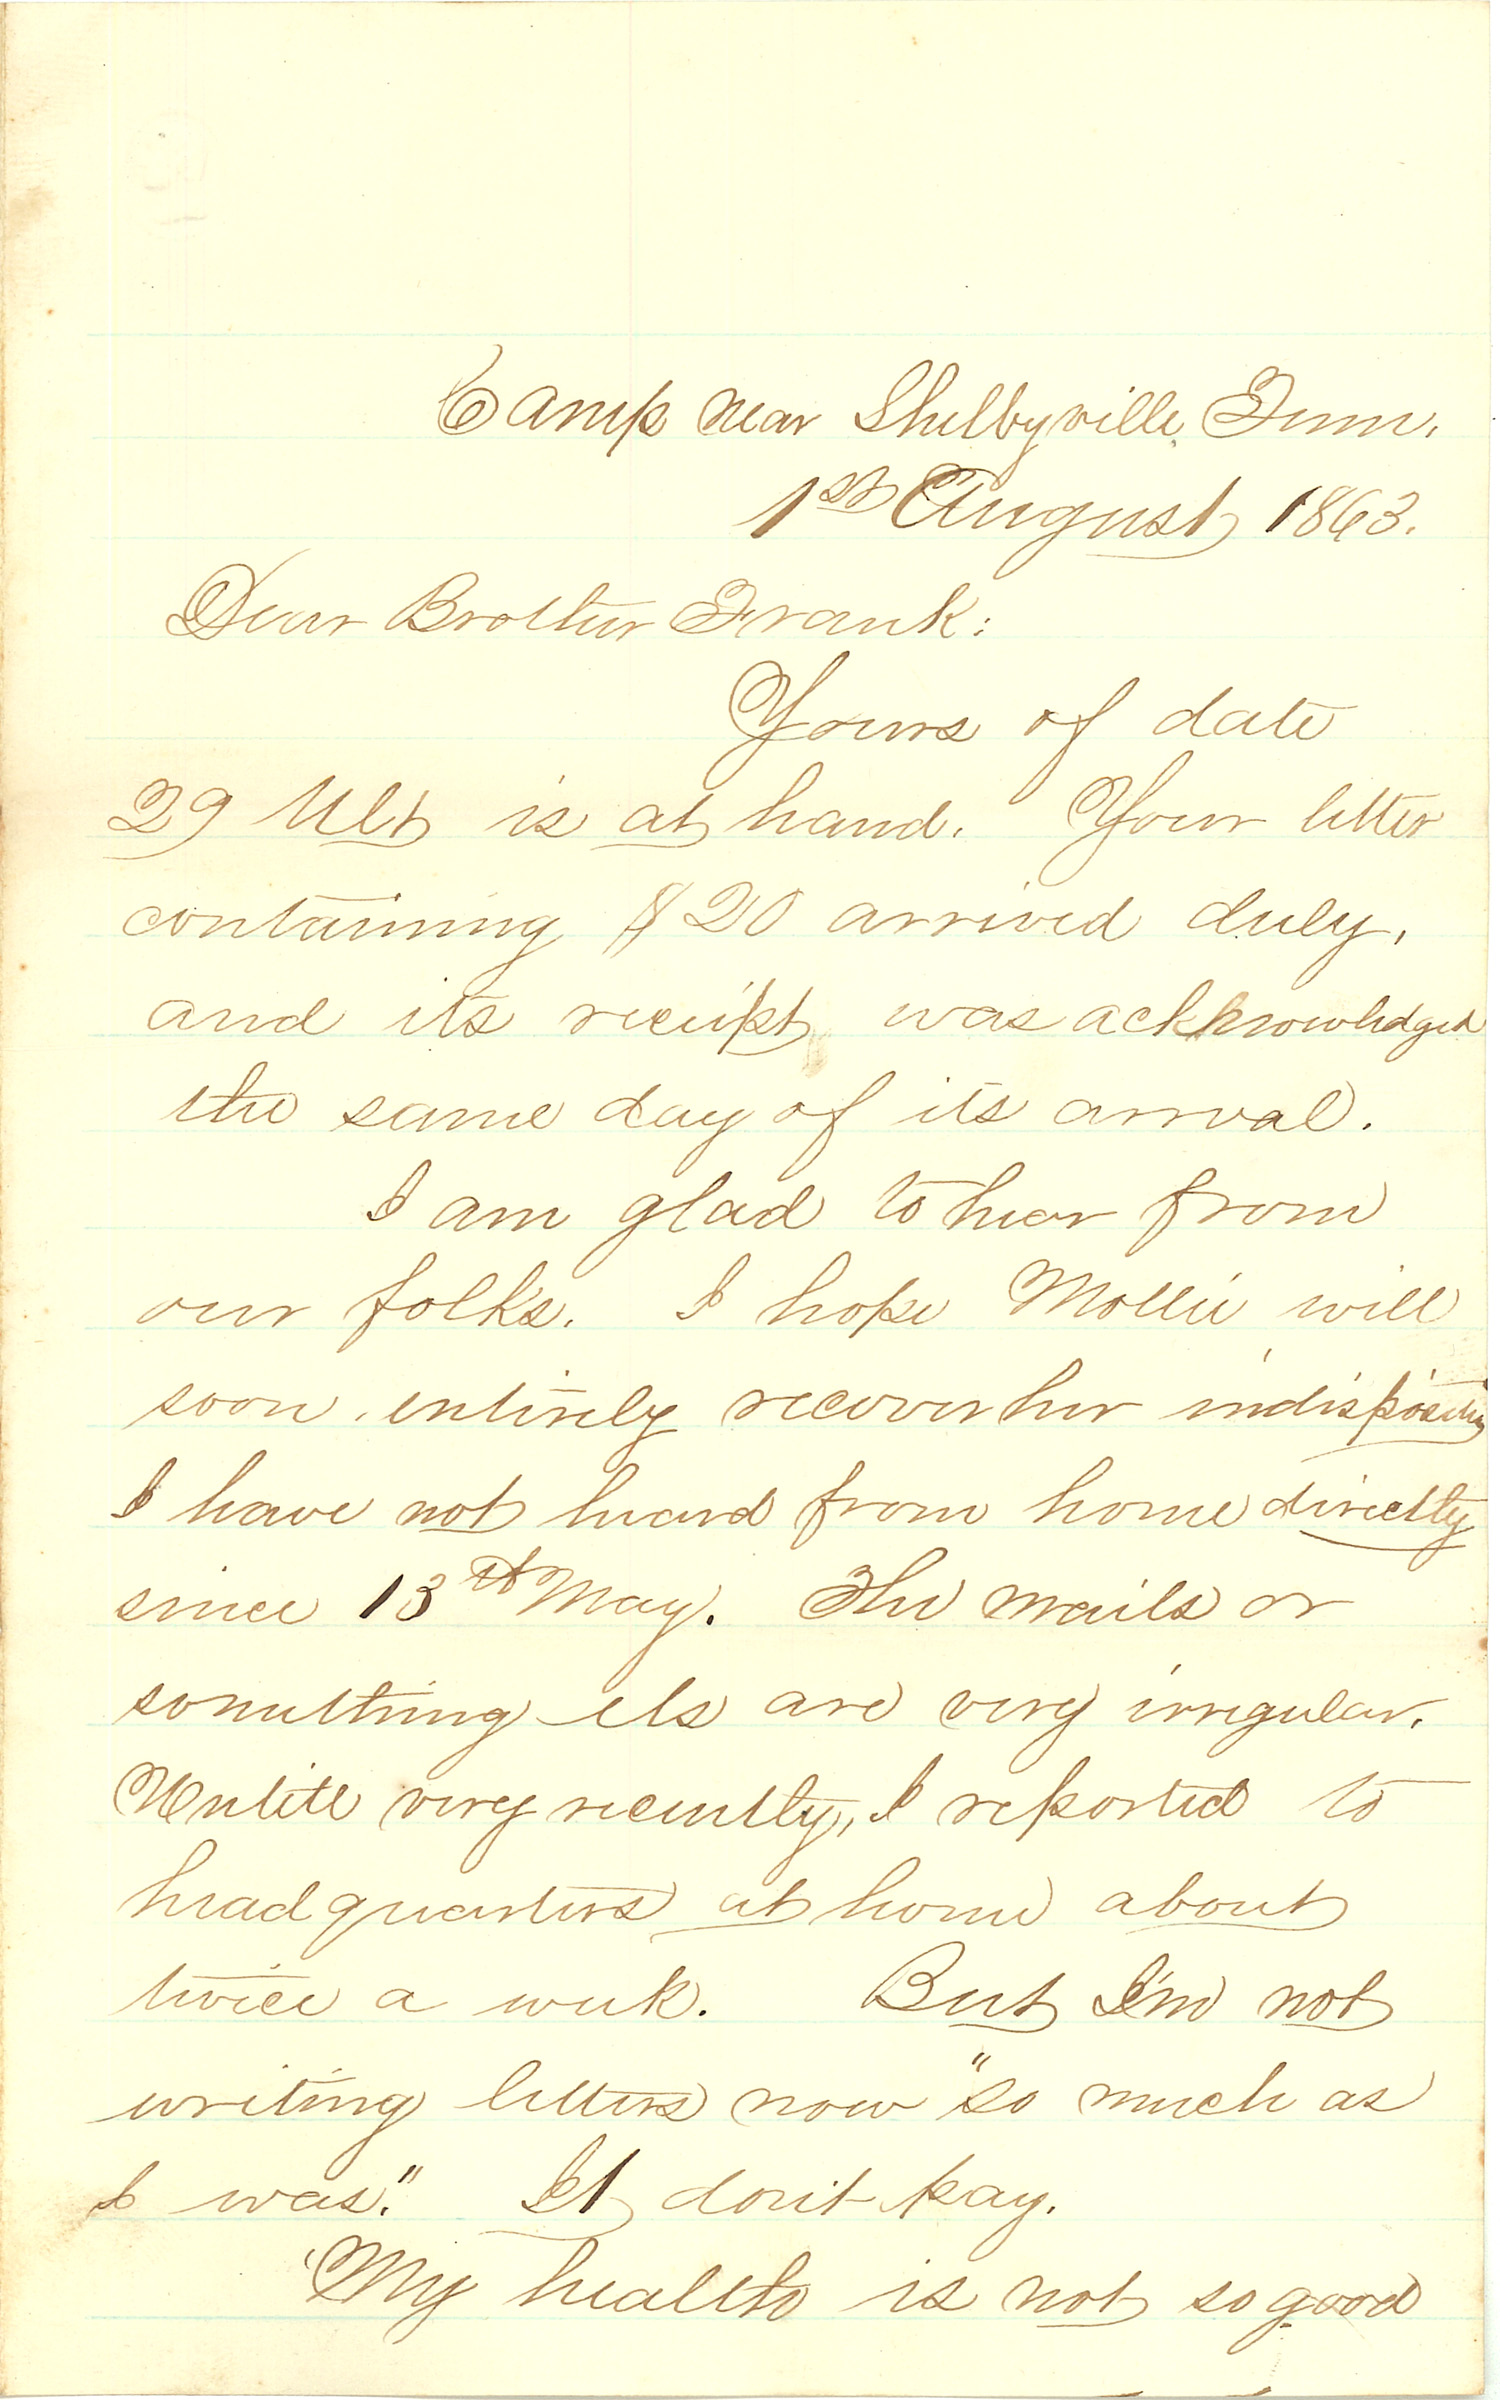 Joseph Culver Letter, August 1, 1863, Page 1